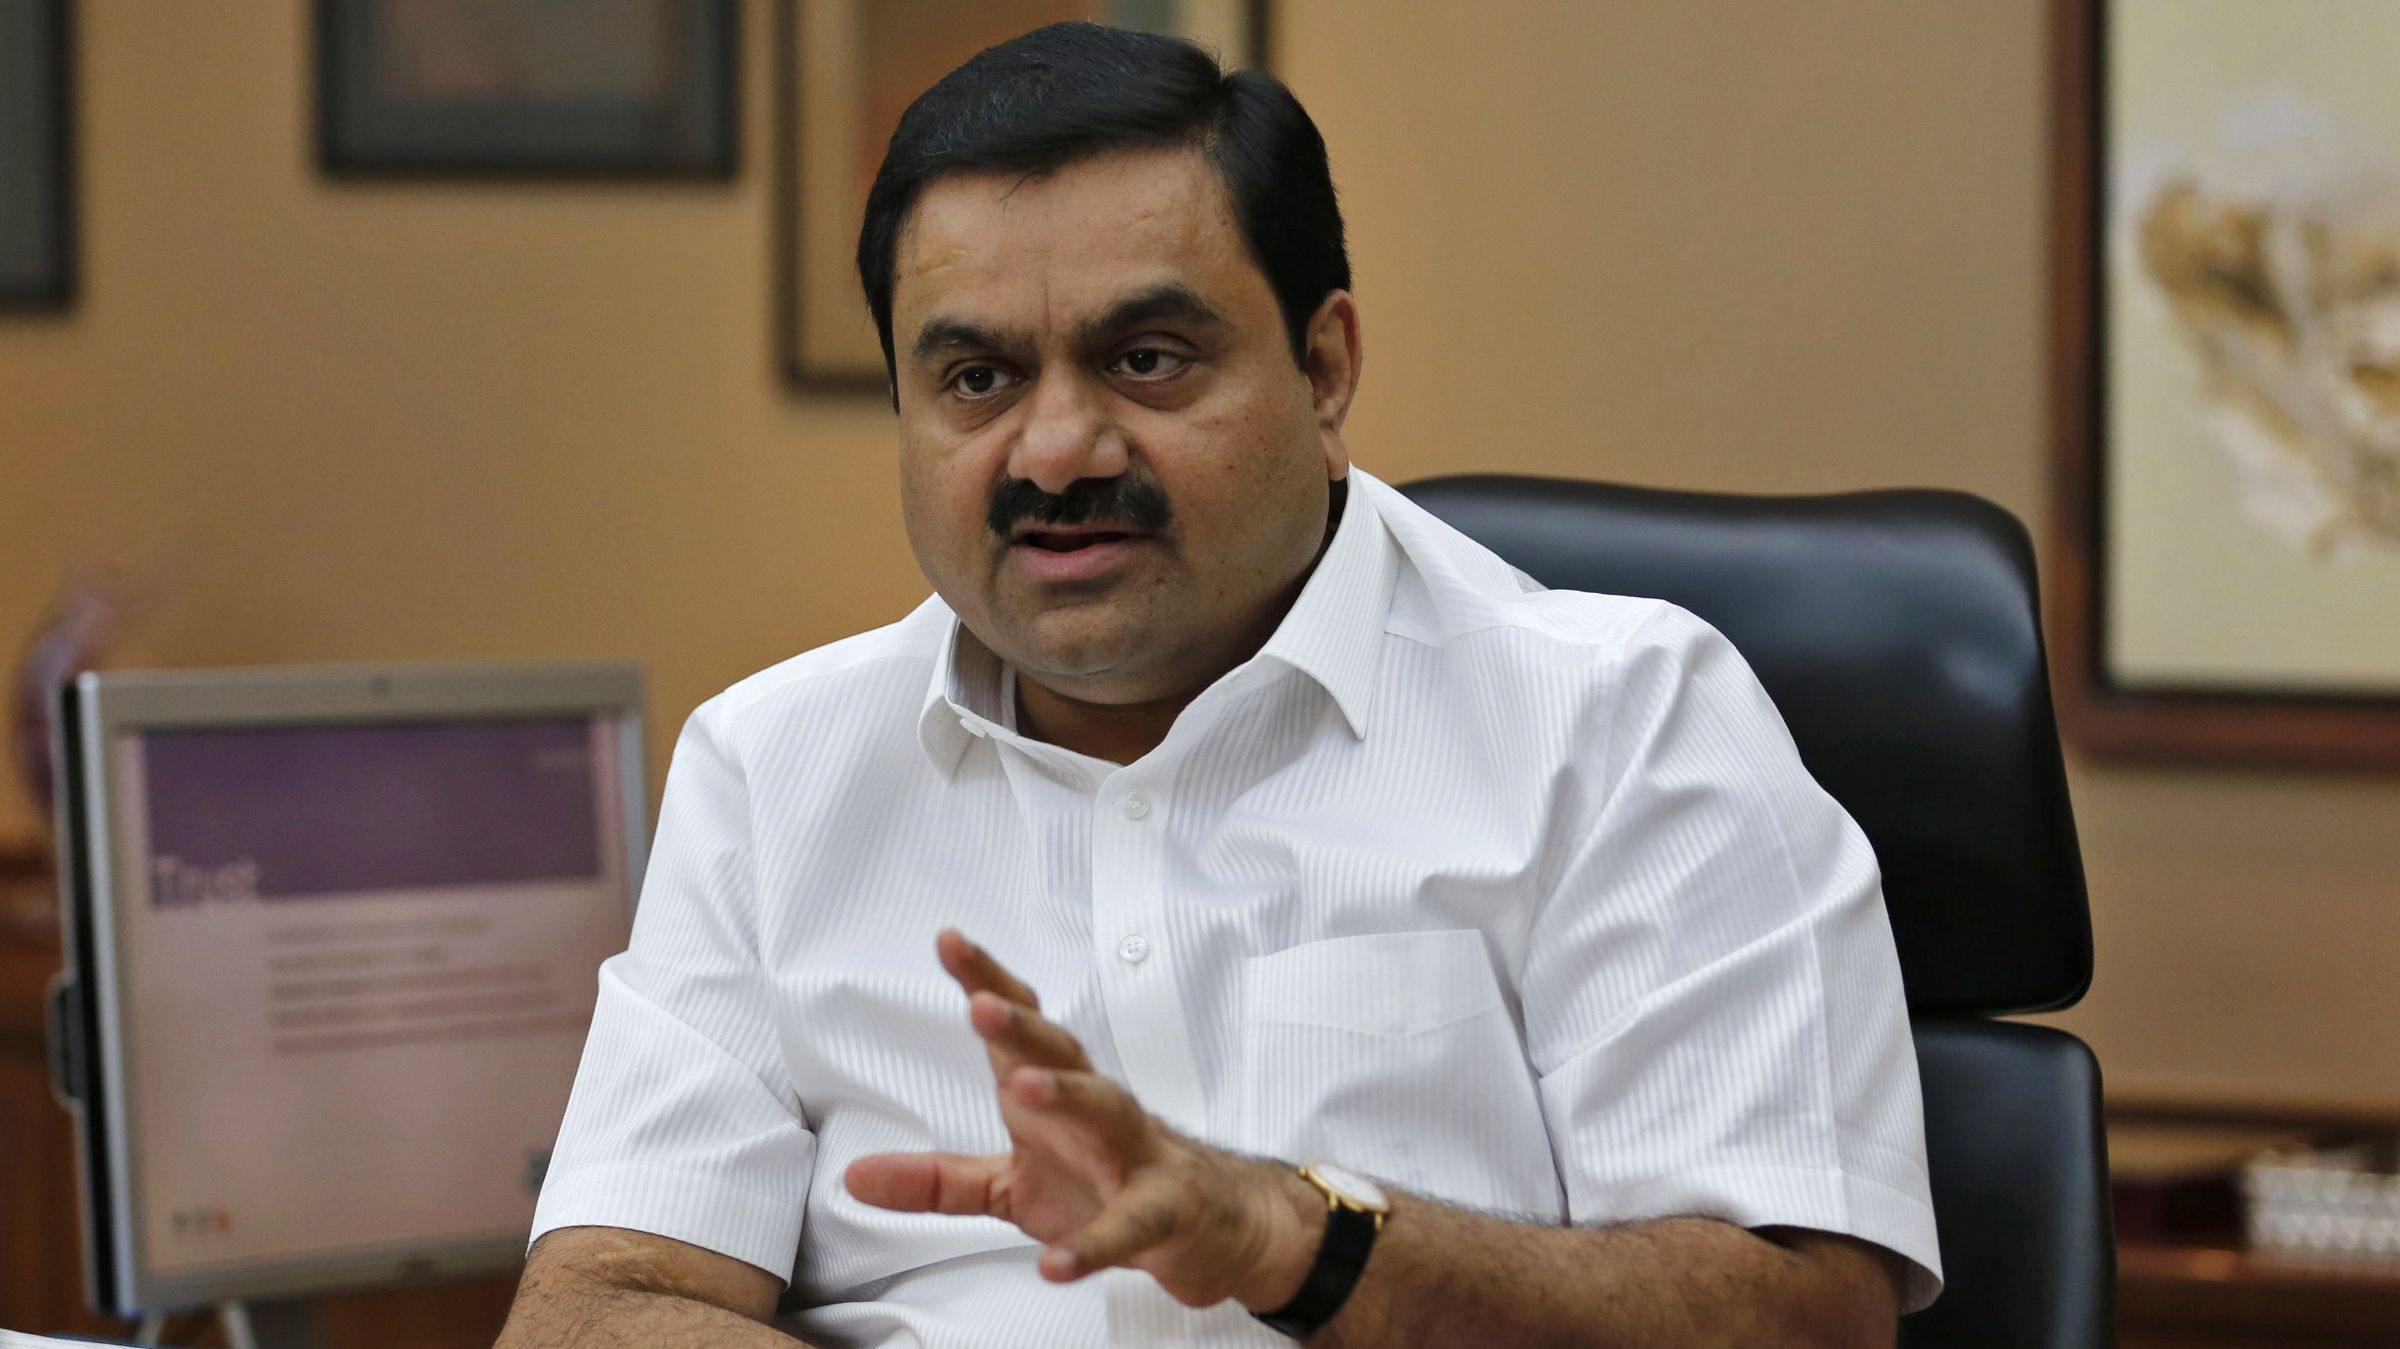 Indian billionaire Gautam Adani speaks during an interview with Reuters at his office in the western Indian city of Ahmedabad April 2, 2014. The way billionaire Indian infrastructure-builder Adani sees it, working with the government does not make him a crony-capitalist. Adani's rapid ascent to the top tier of Indian business is often associated with the rise of Narendra Modi, the Hindu nationalist opposition leader widely expected to become India's next prime minister once the country's election ends next month. Its flagship Adani Enterprises soared 22.9 percent for its biggest daily gain on Thursday and has nearly doubled since the start of February, compared with a nearly 20 percent gain in the infrastructure index.The way billionaire Indian infrastructure-builder Gautam Adani sees it, working with the government does not make him a crony-capitalist. Adani's rapid ascent to the top tier of Indian business is often associated with the rise of Narendra Modi, the Hindu nationalist opposition leader widely expected to become India's next prime minister once the country's election ends next month. Its flagship Adani Enterprises soared 22.9 percent for its biggest daily gain on Thursday and has nearly doubled since the start of February, compared with a nearly 20 percent gain in the infrastructure index. Picture taken April 2, 2014.